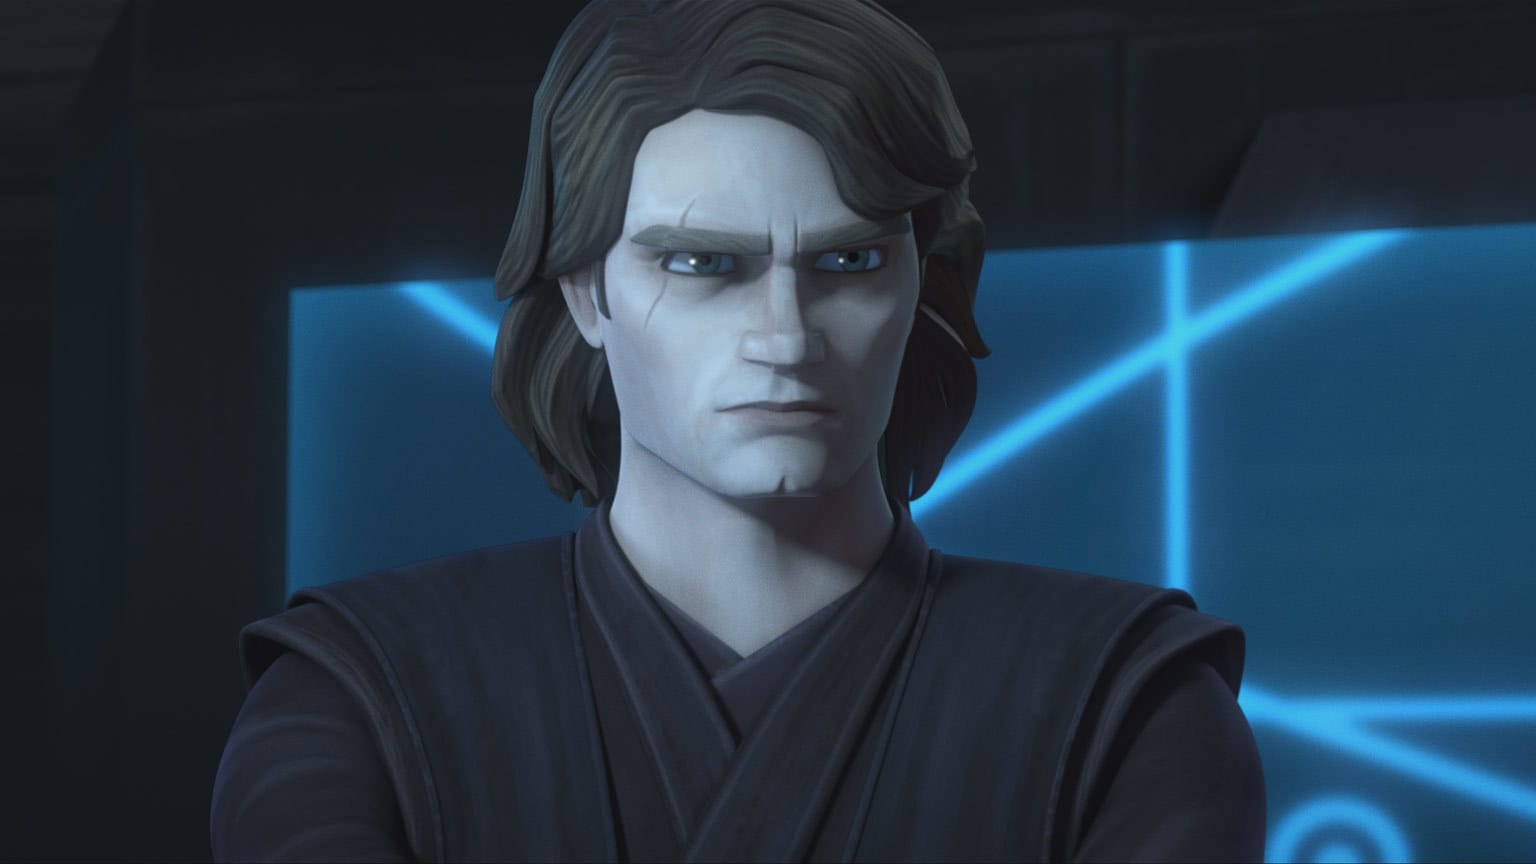 How Star Wars: The Clone Wars Further Explored the Journey of Anakin Skywalker